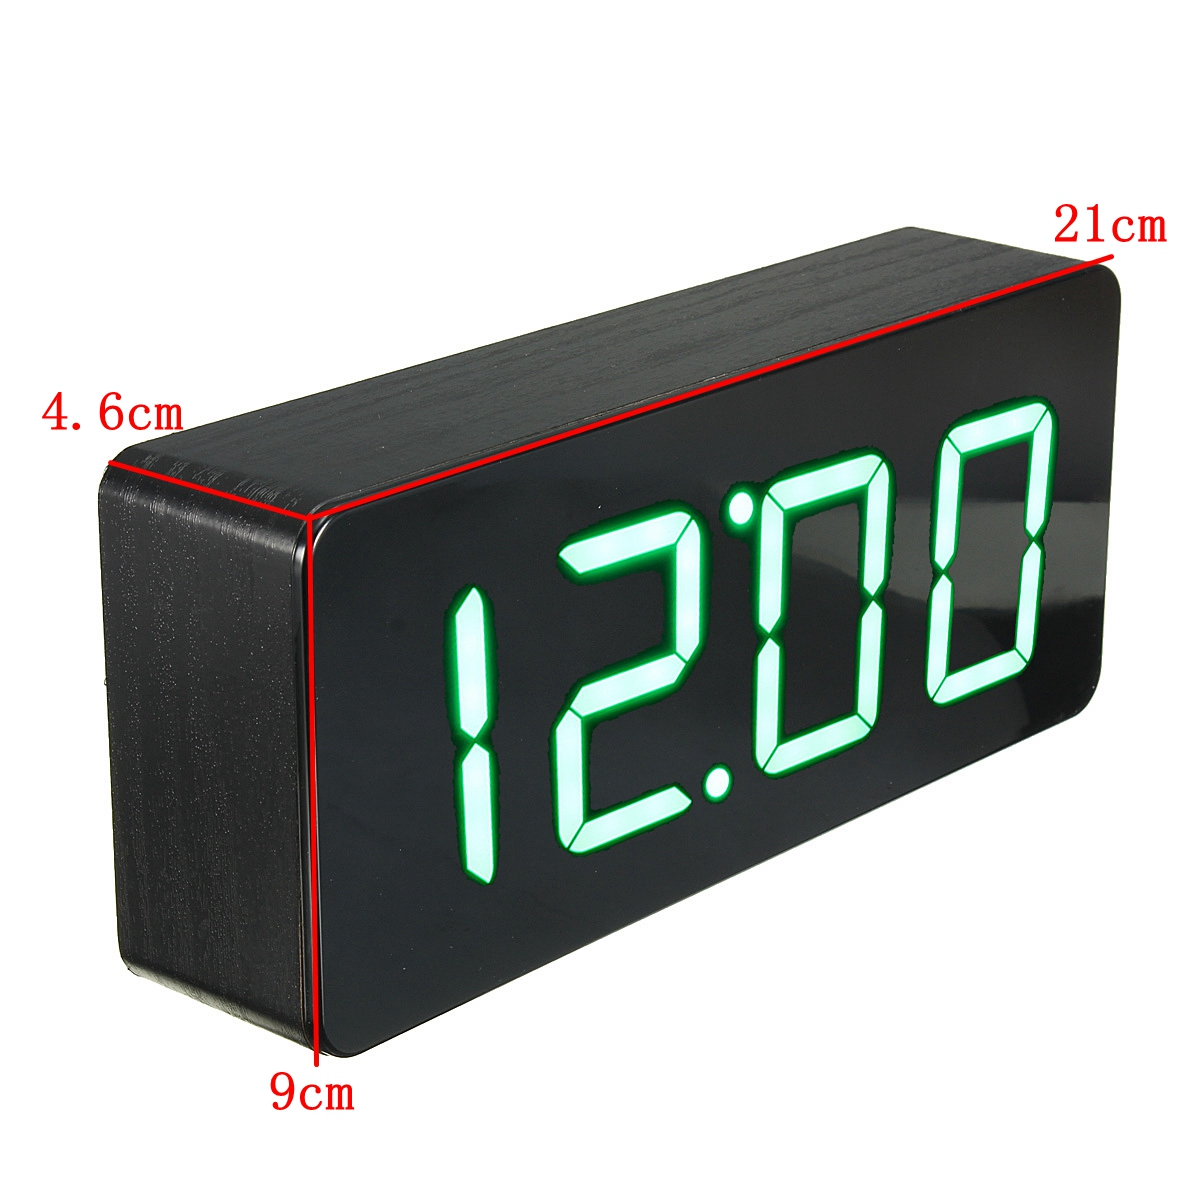 acryl spiegel wooden holz digital led wecker clock uhr zeit kalender thermometer black. Black Bedroom Furniture Sets. Home Design Ideas